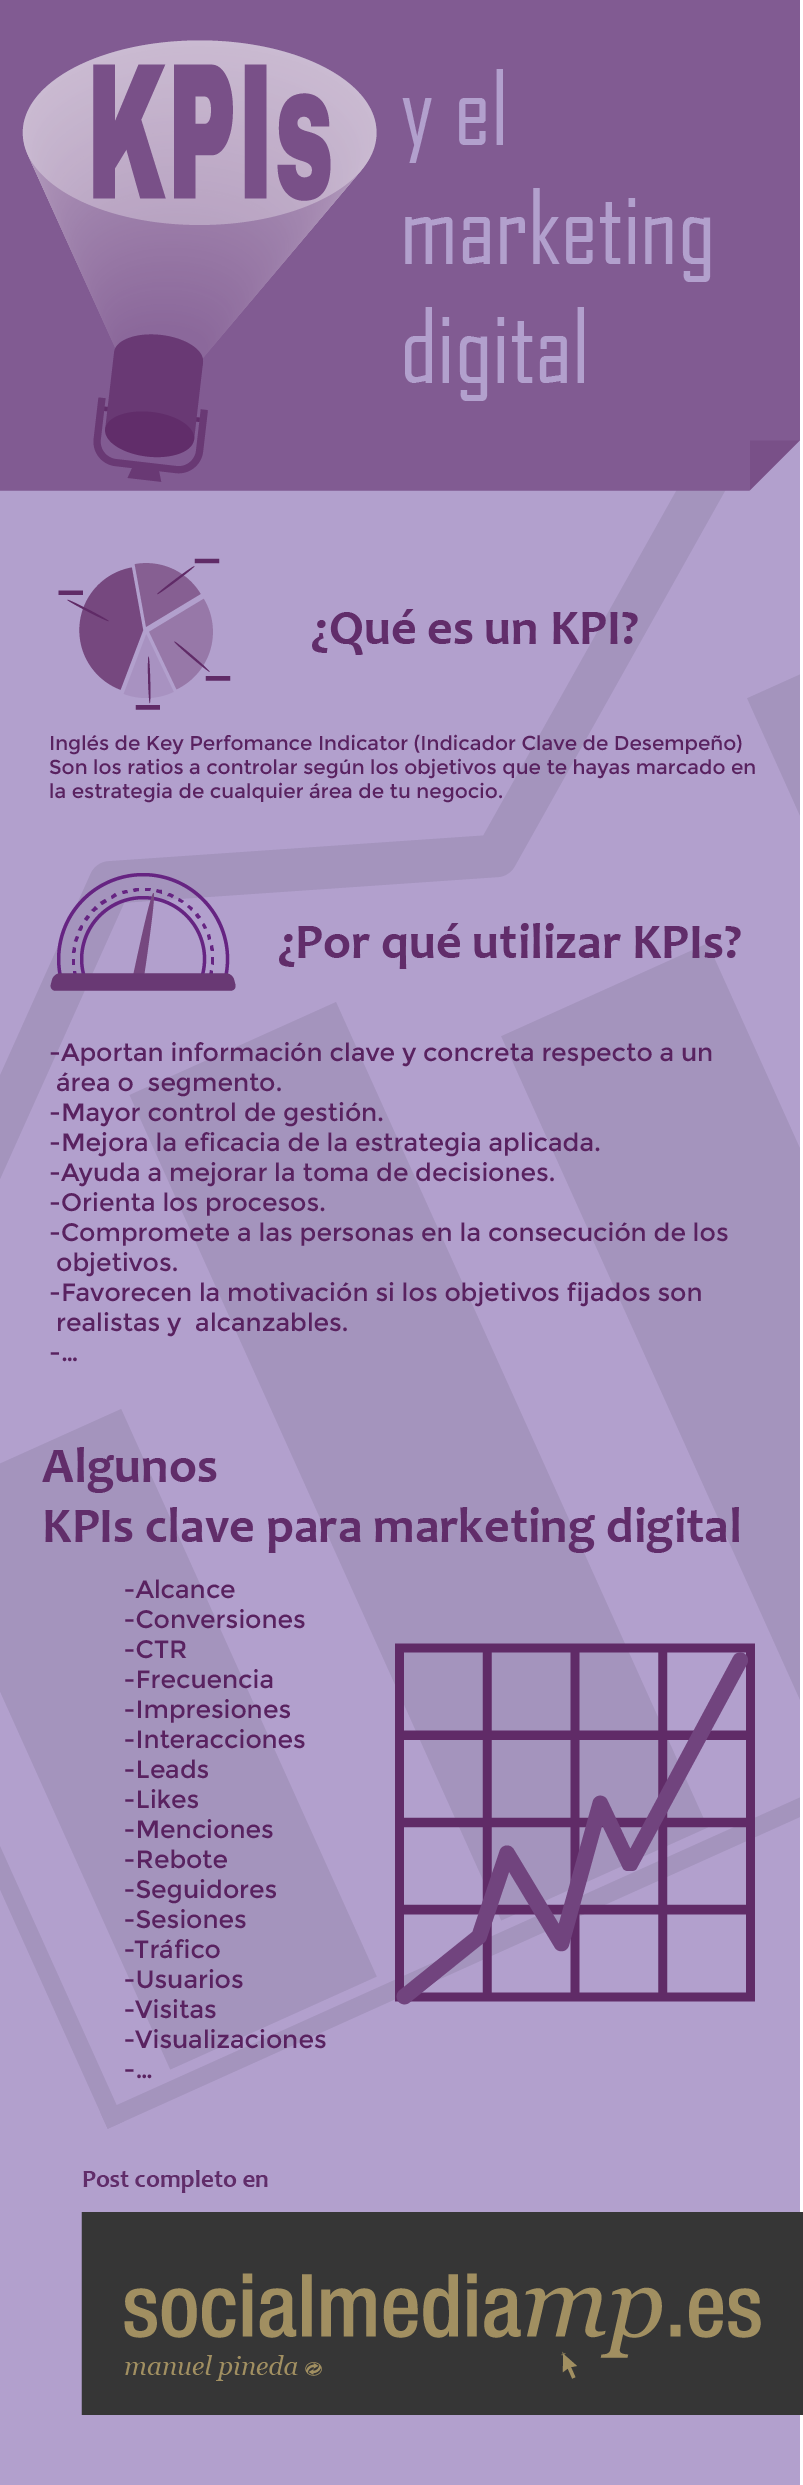 Infografia - KPIs y Marketing Digital #infografia #infographic #marketing - TICs y Formación